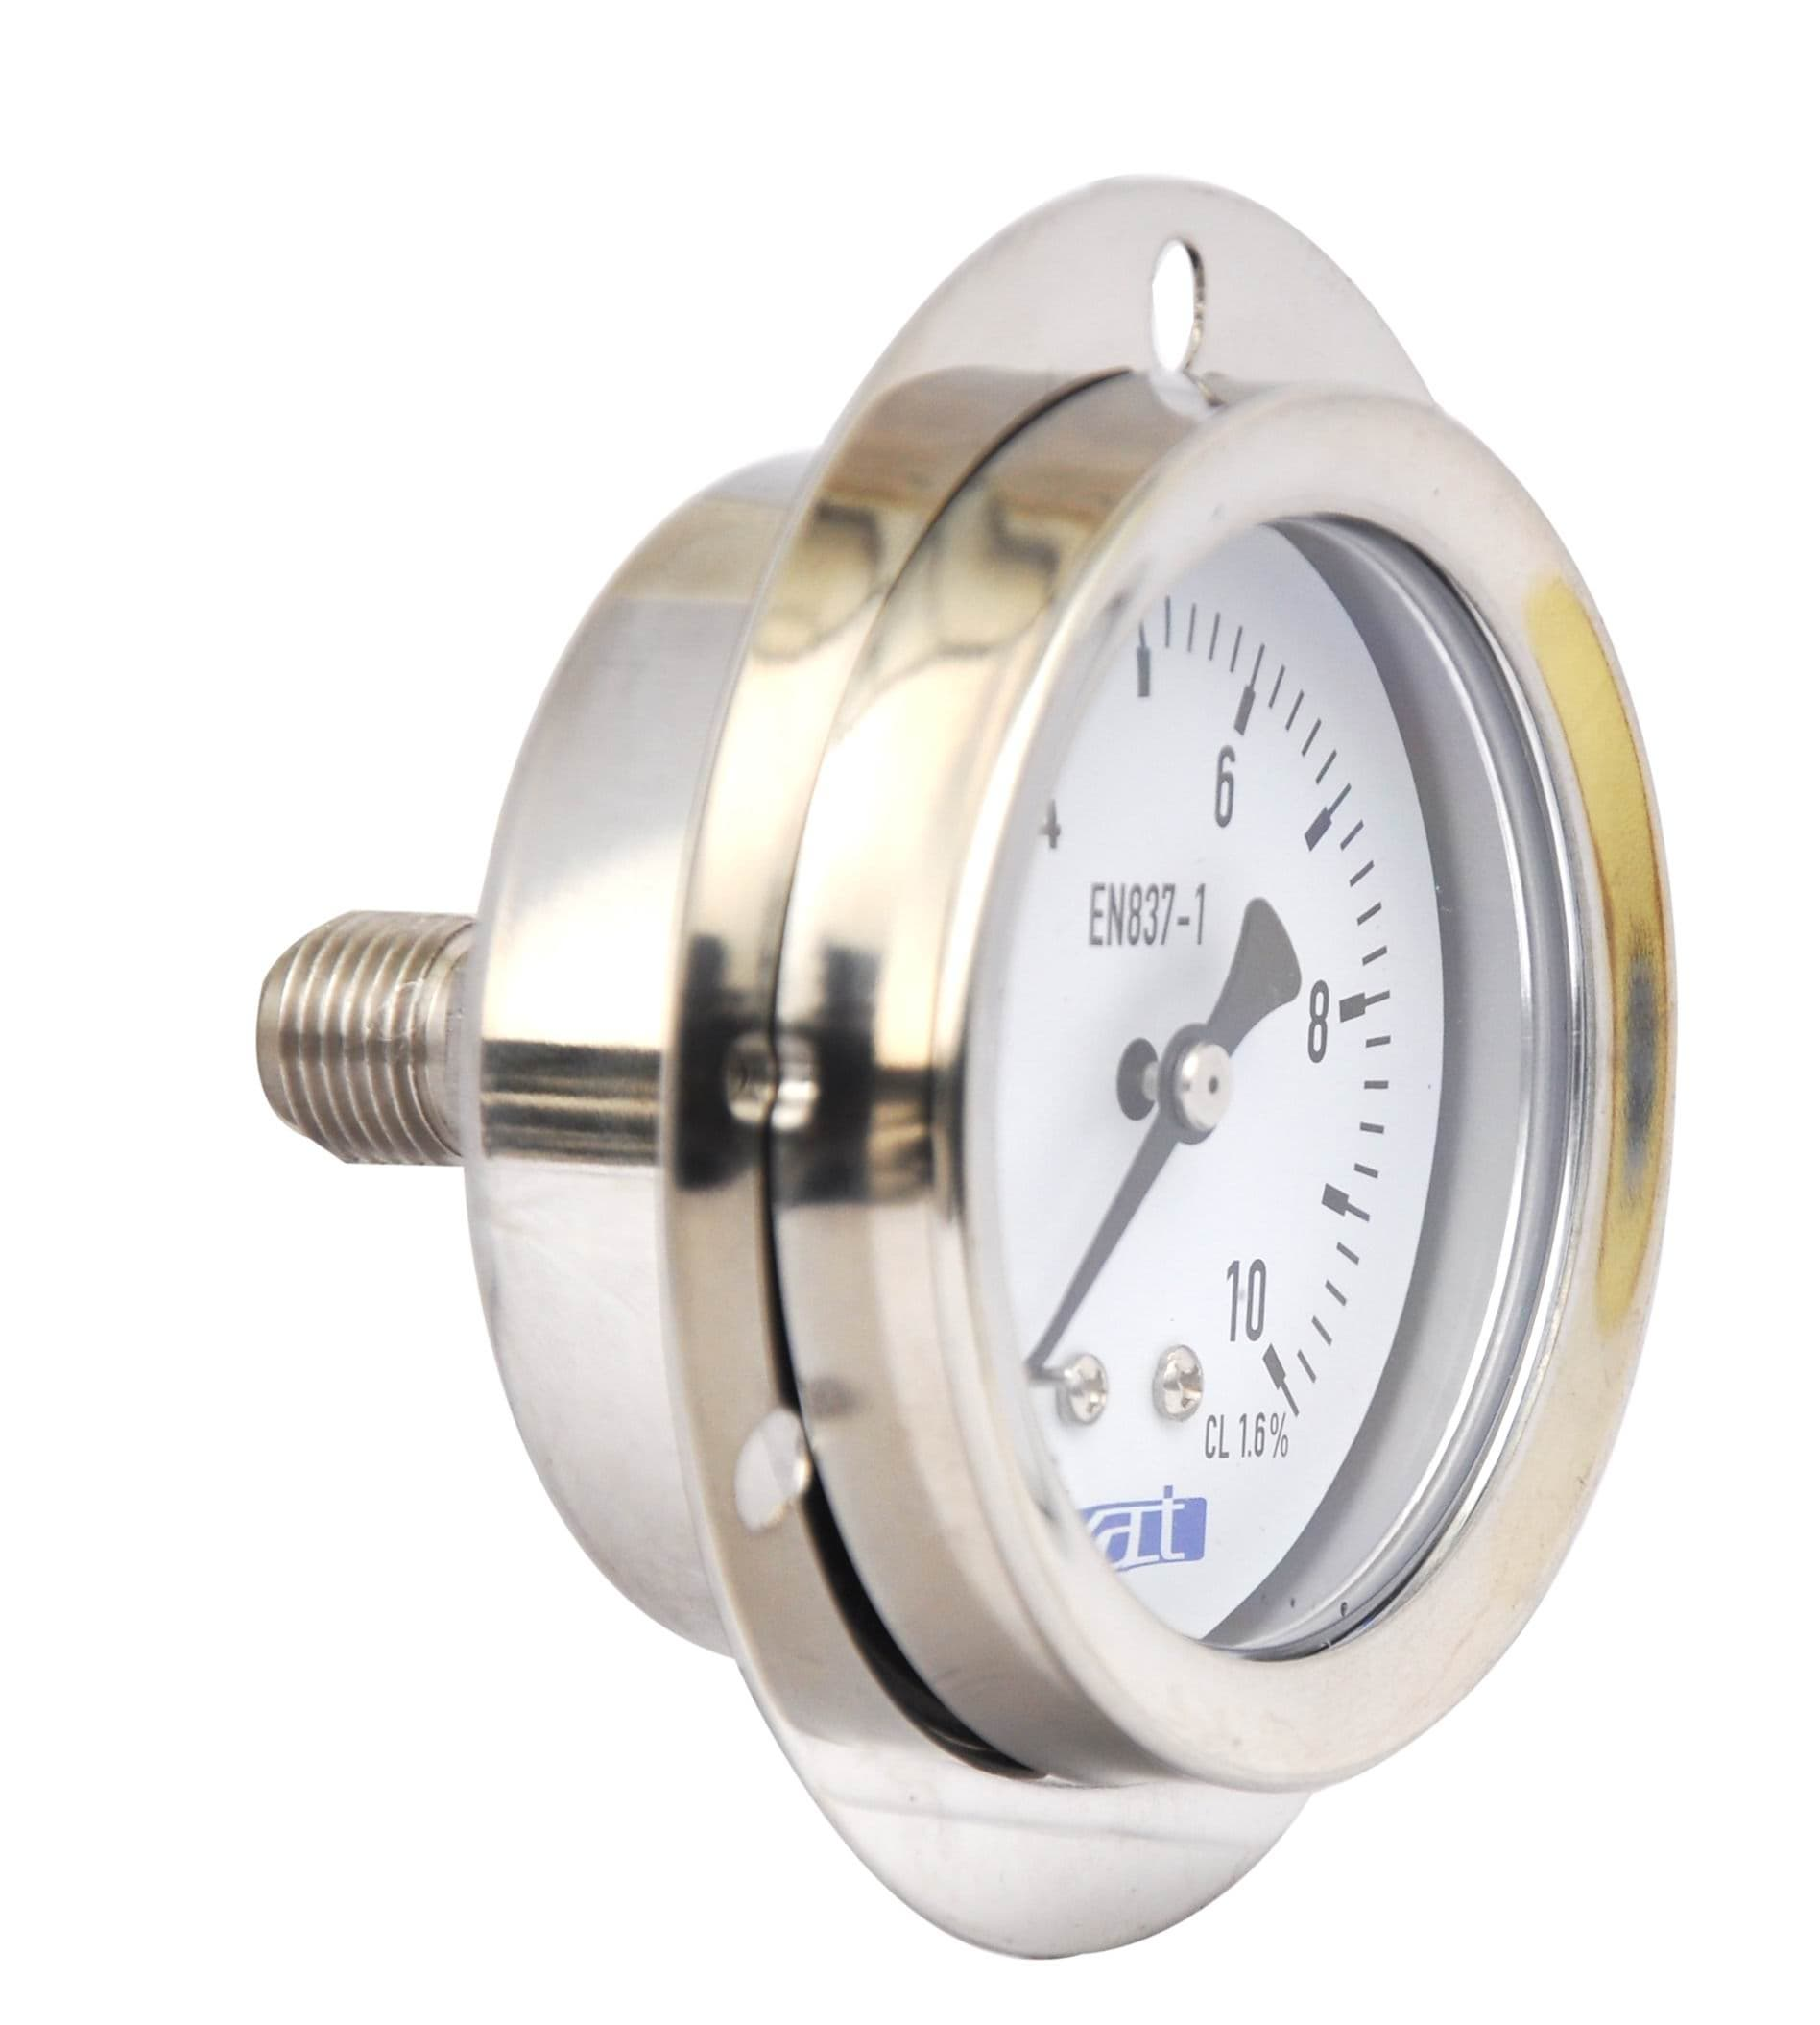 Pressure Measuring Instruments : Stainless steel liquid filled pressure gauge cv from